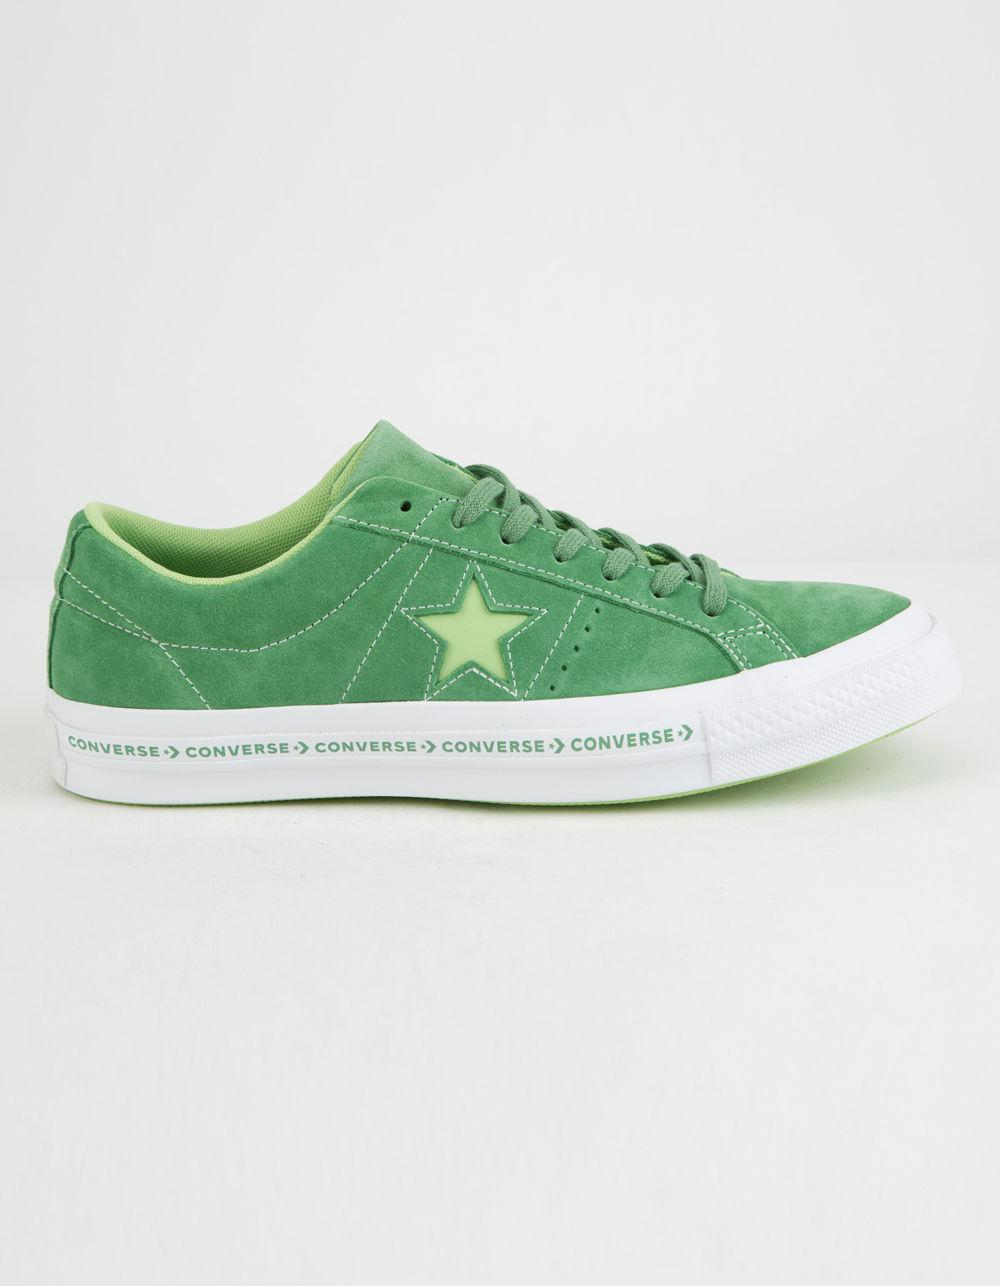 f5a8733519b ... sneakers 6dd9f 771df  italy lyst converse one star pinstripe mint green  jade lime white a517d 9ff9d